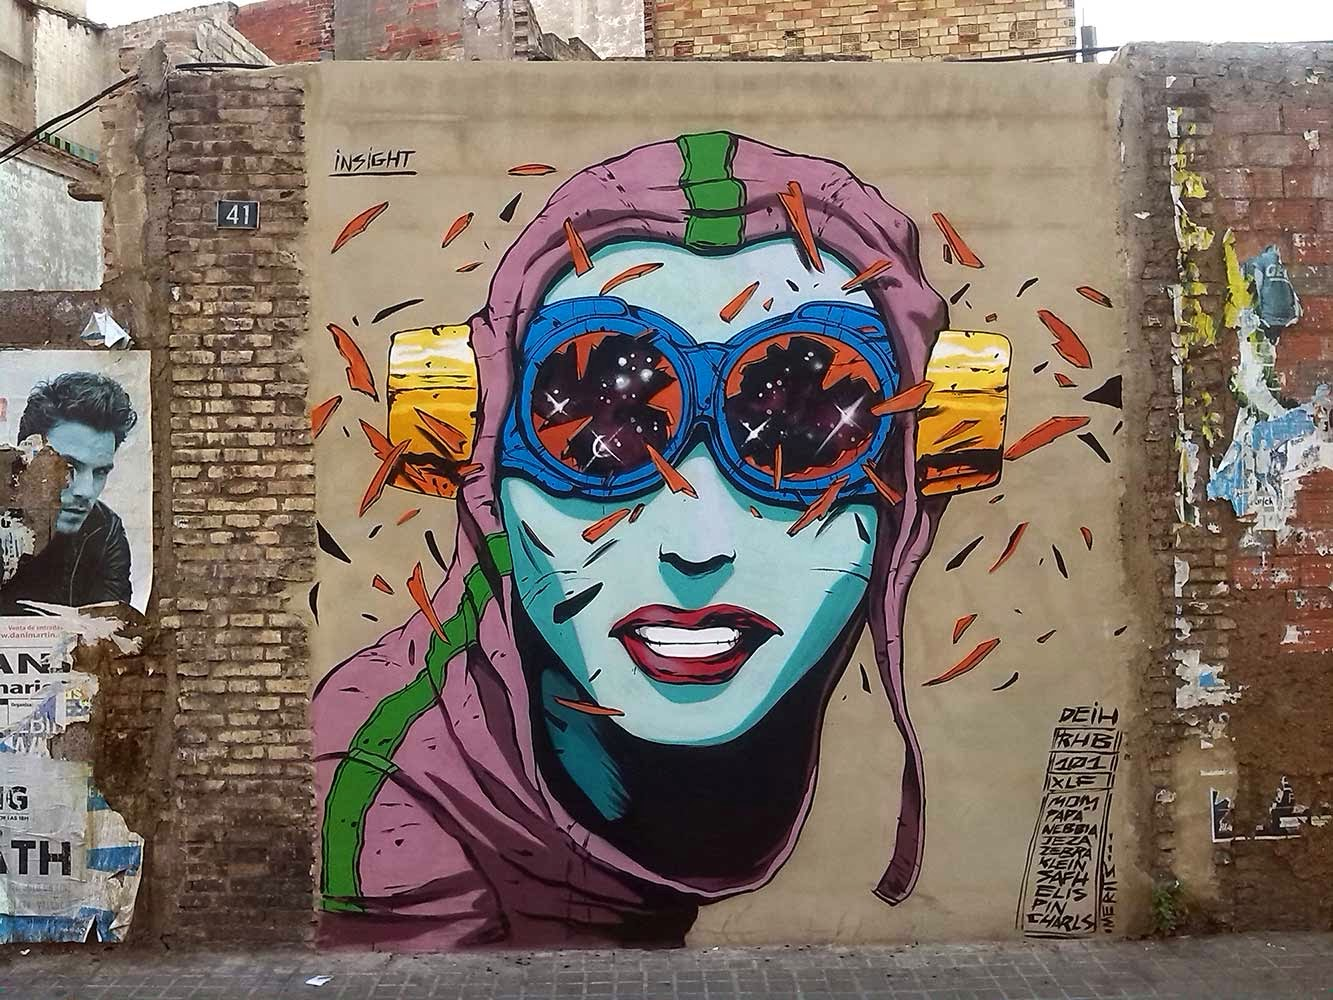 Our friend Deih XLF just finished working on this illegal piece somewhere on the streets of his hometown, Valencia in Spain.